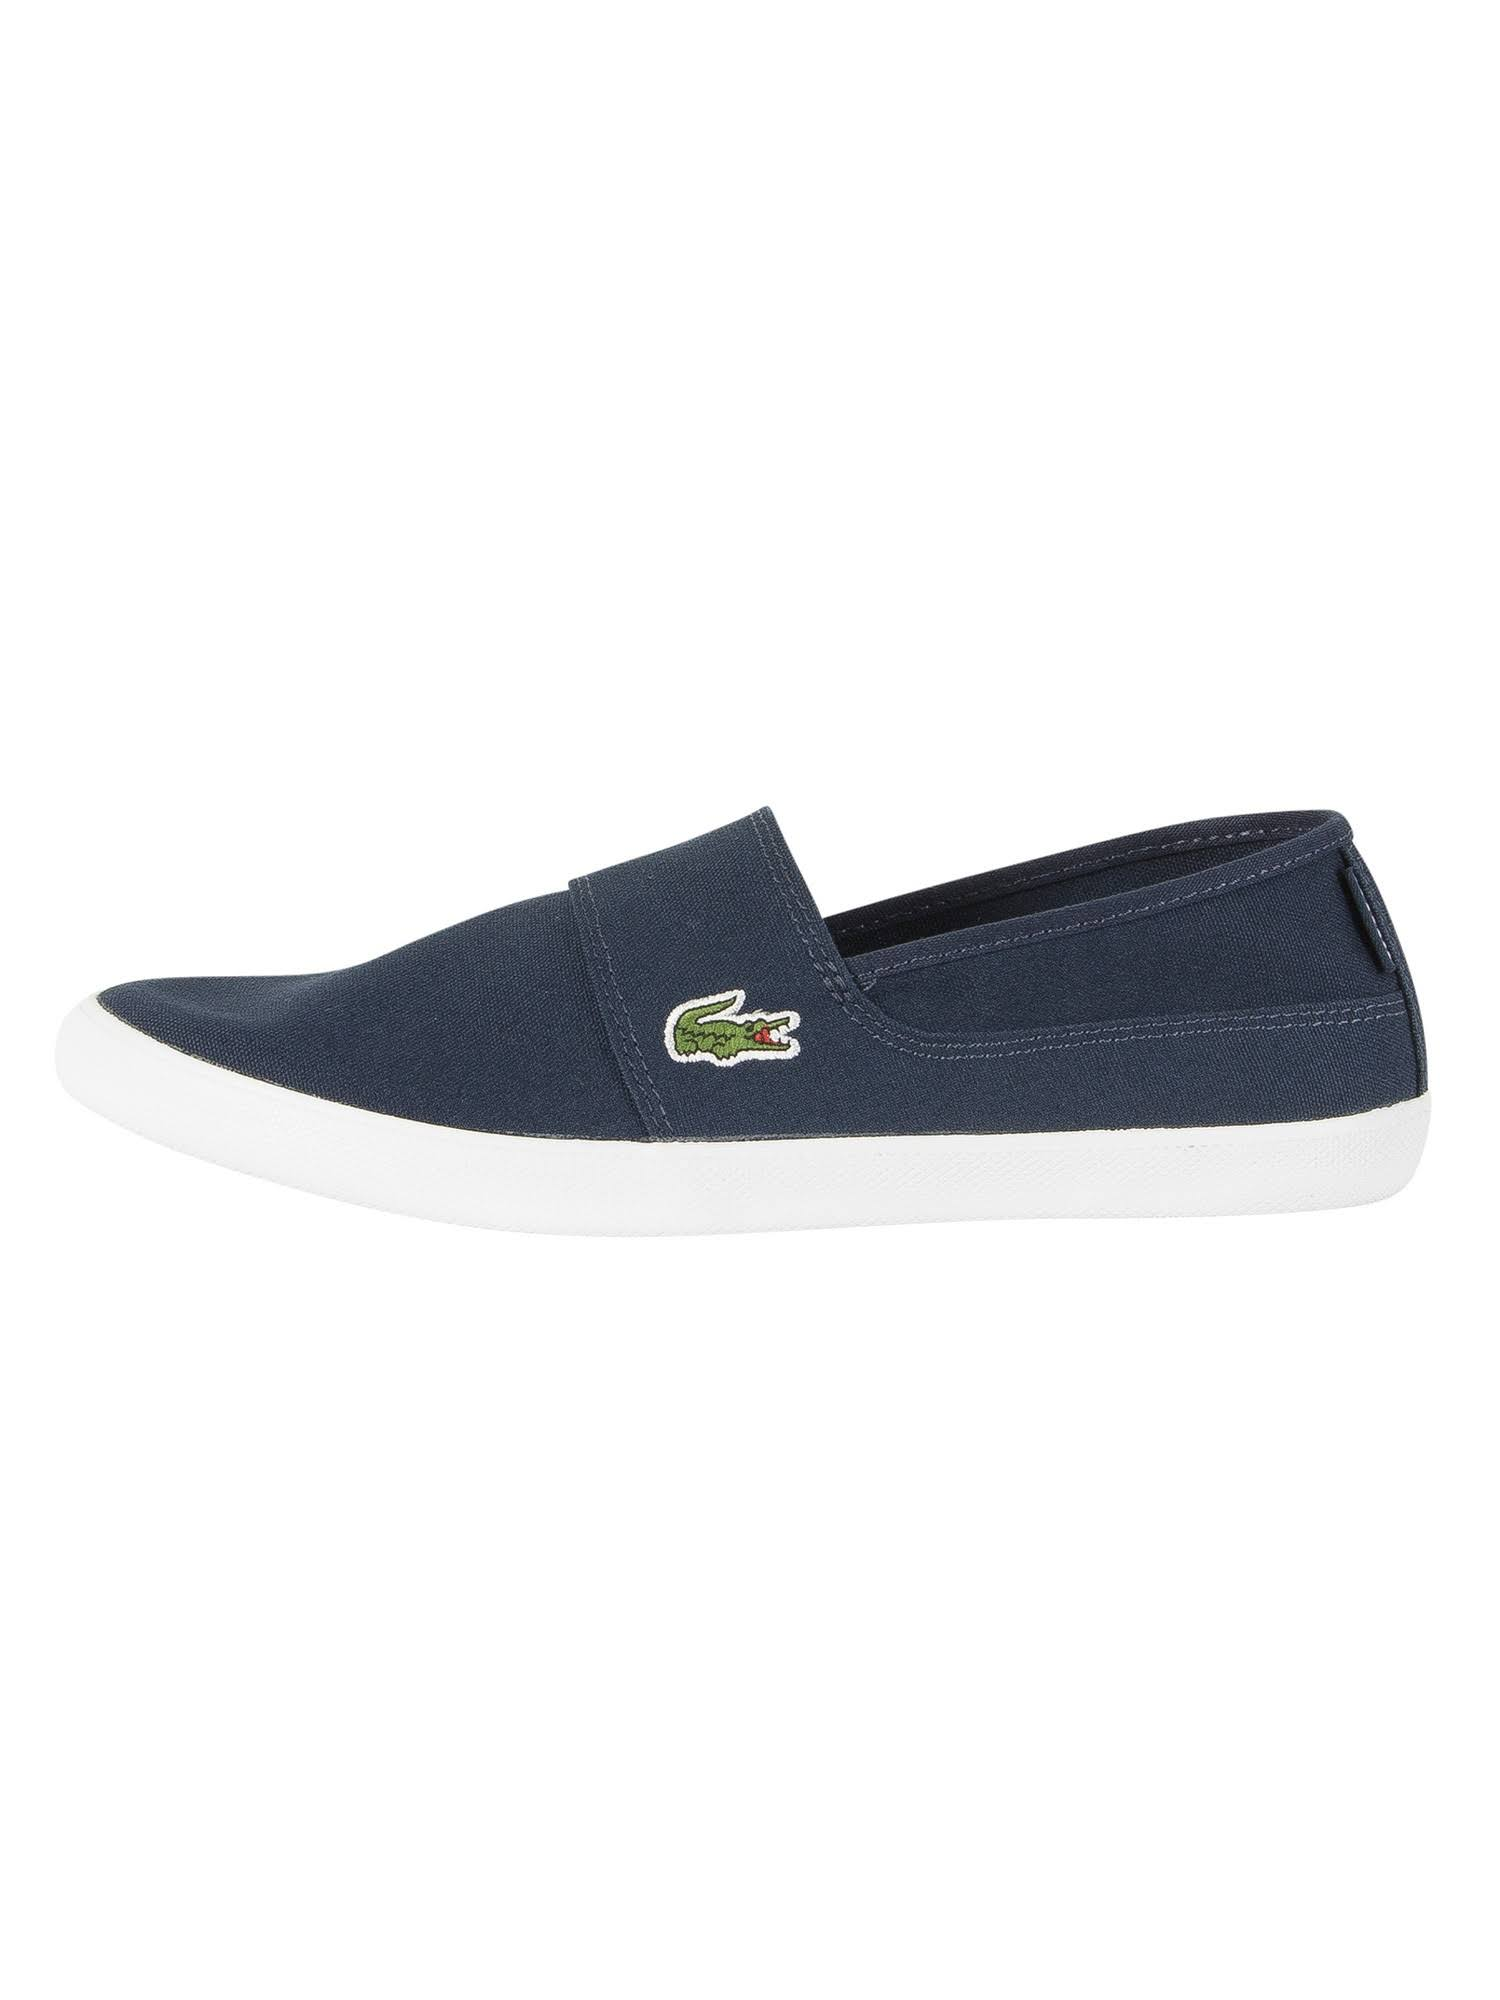 Dark Mens In Bl Marice 2 Blue Lacoste Slip On qxSR0R7w